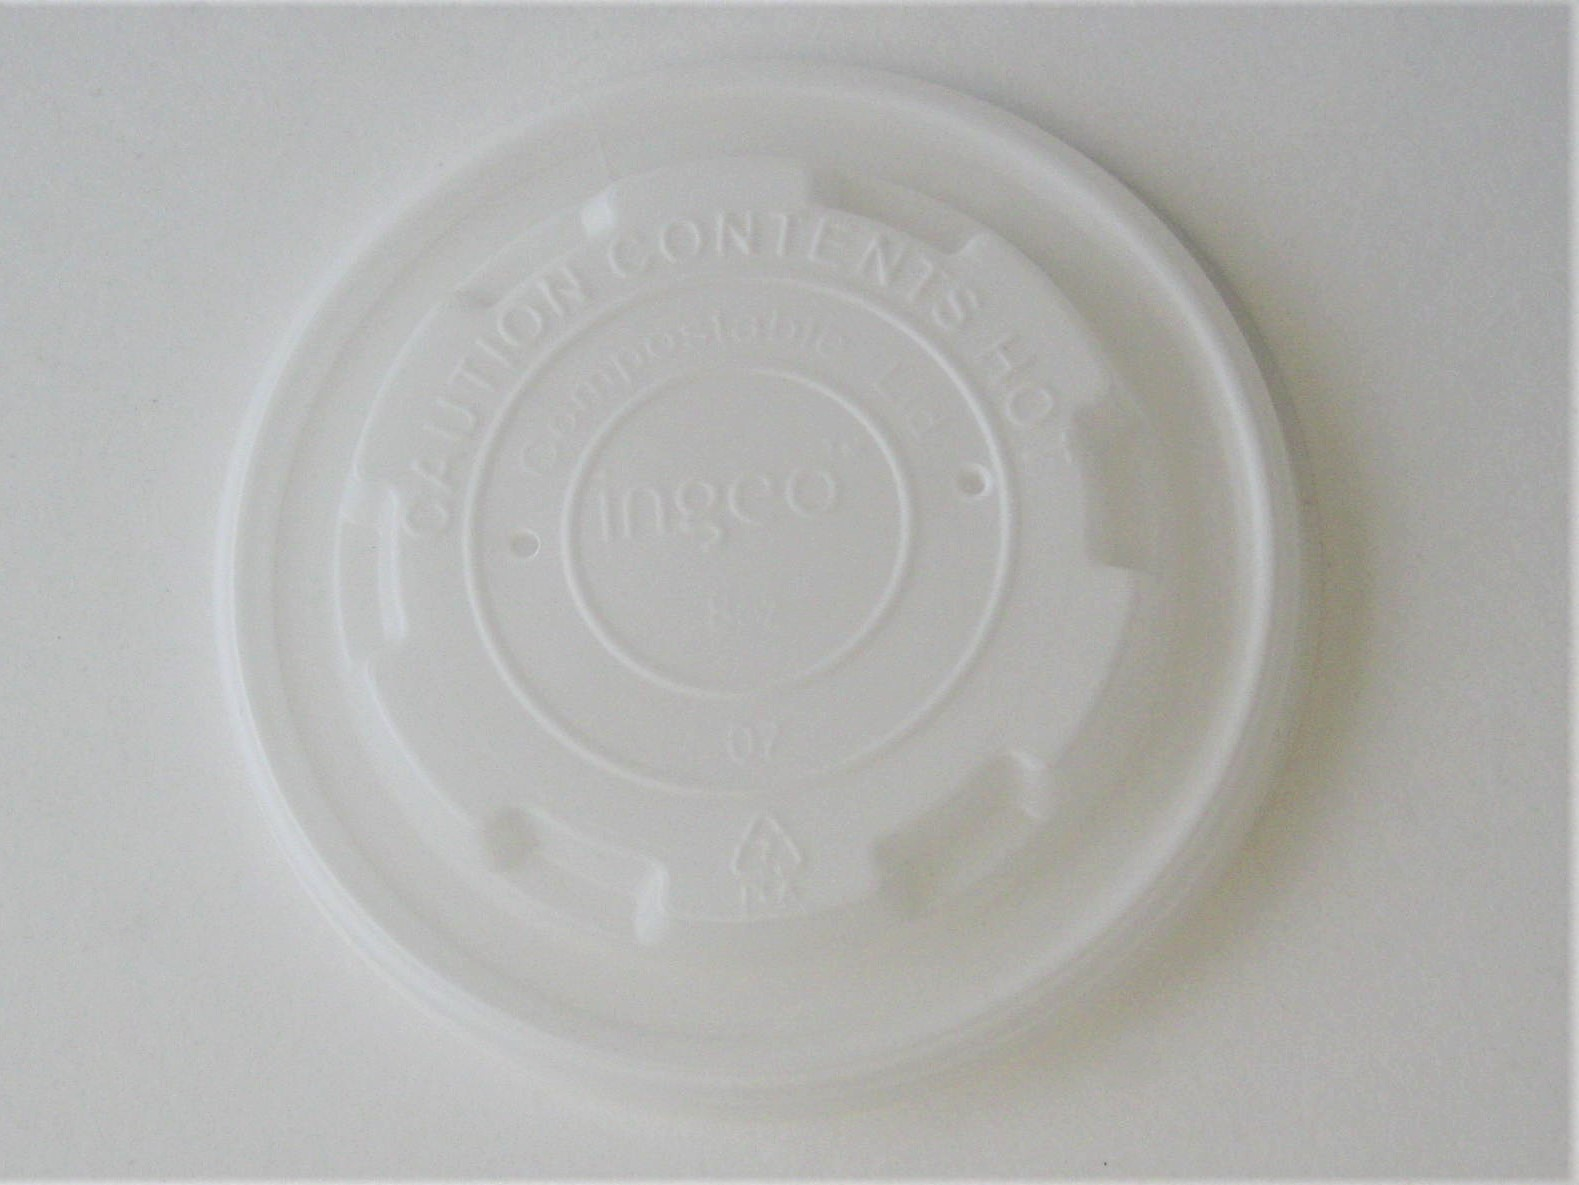 8 oz Soup Cup Lid